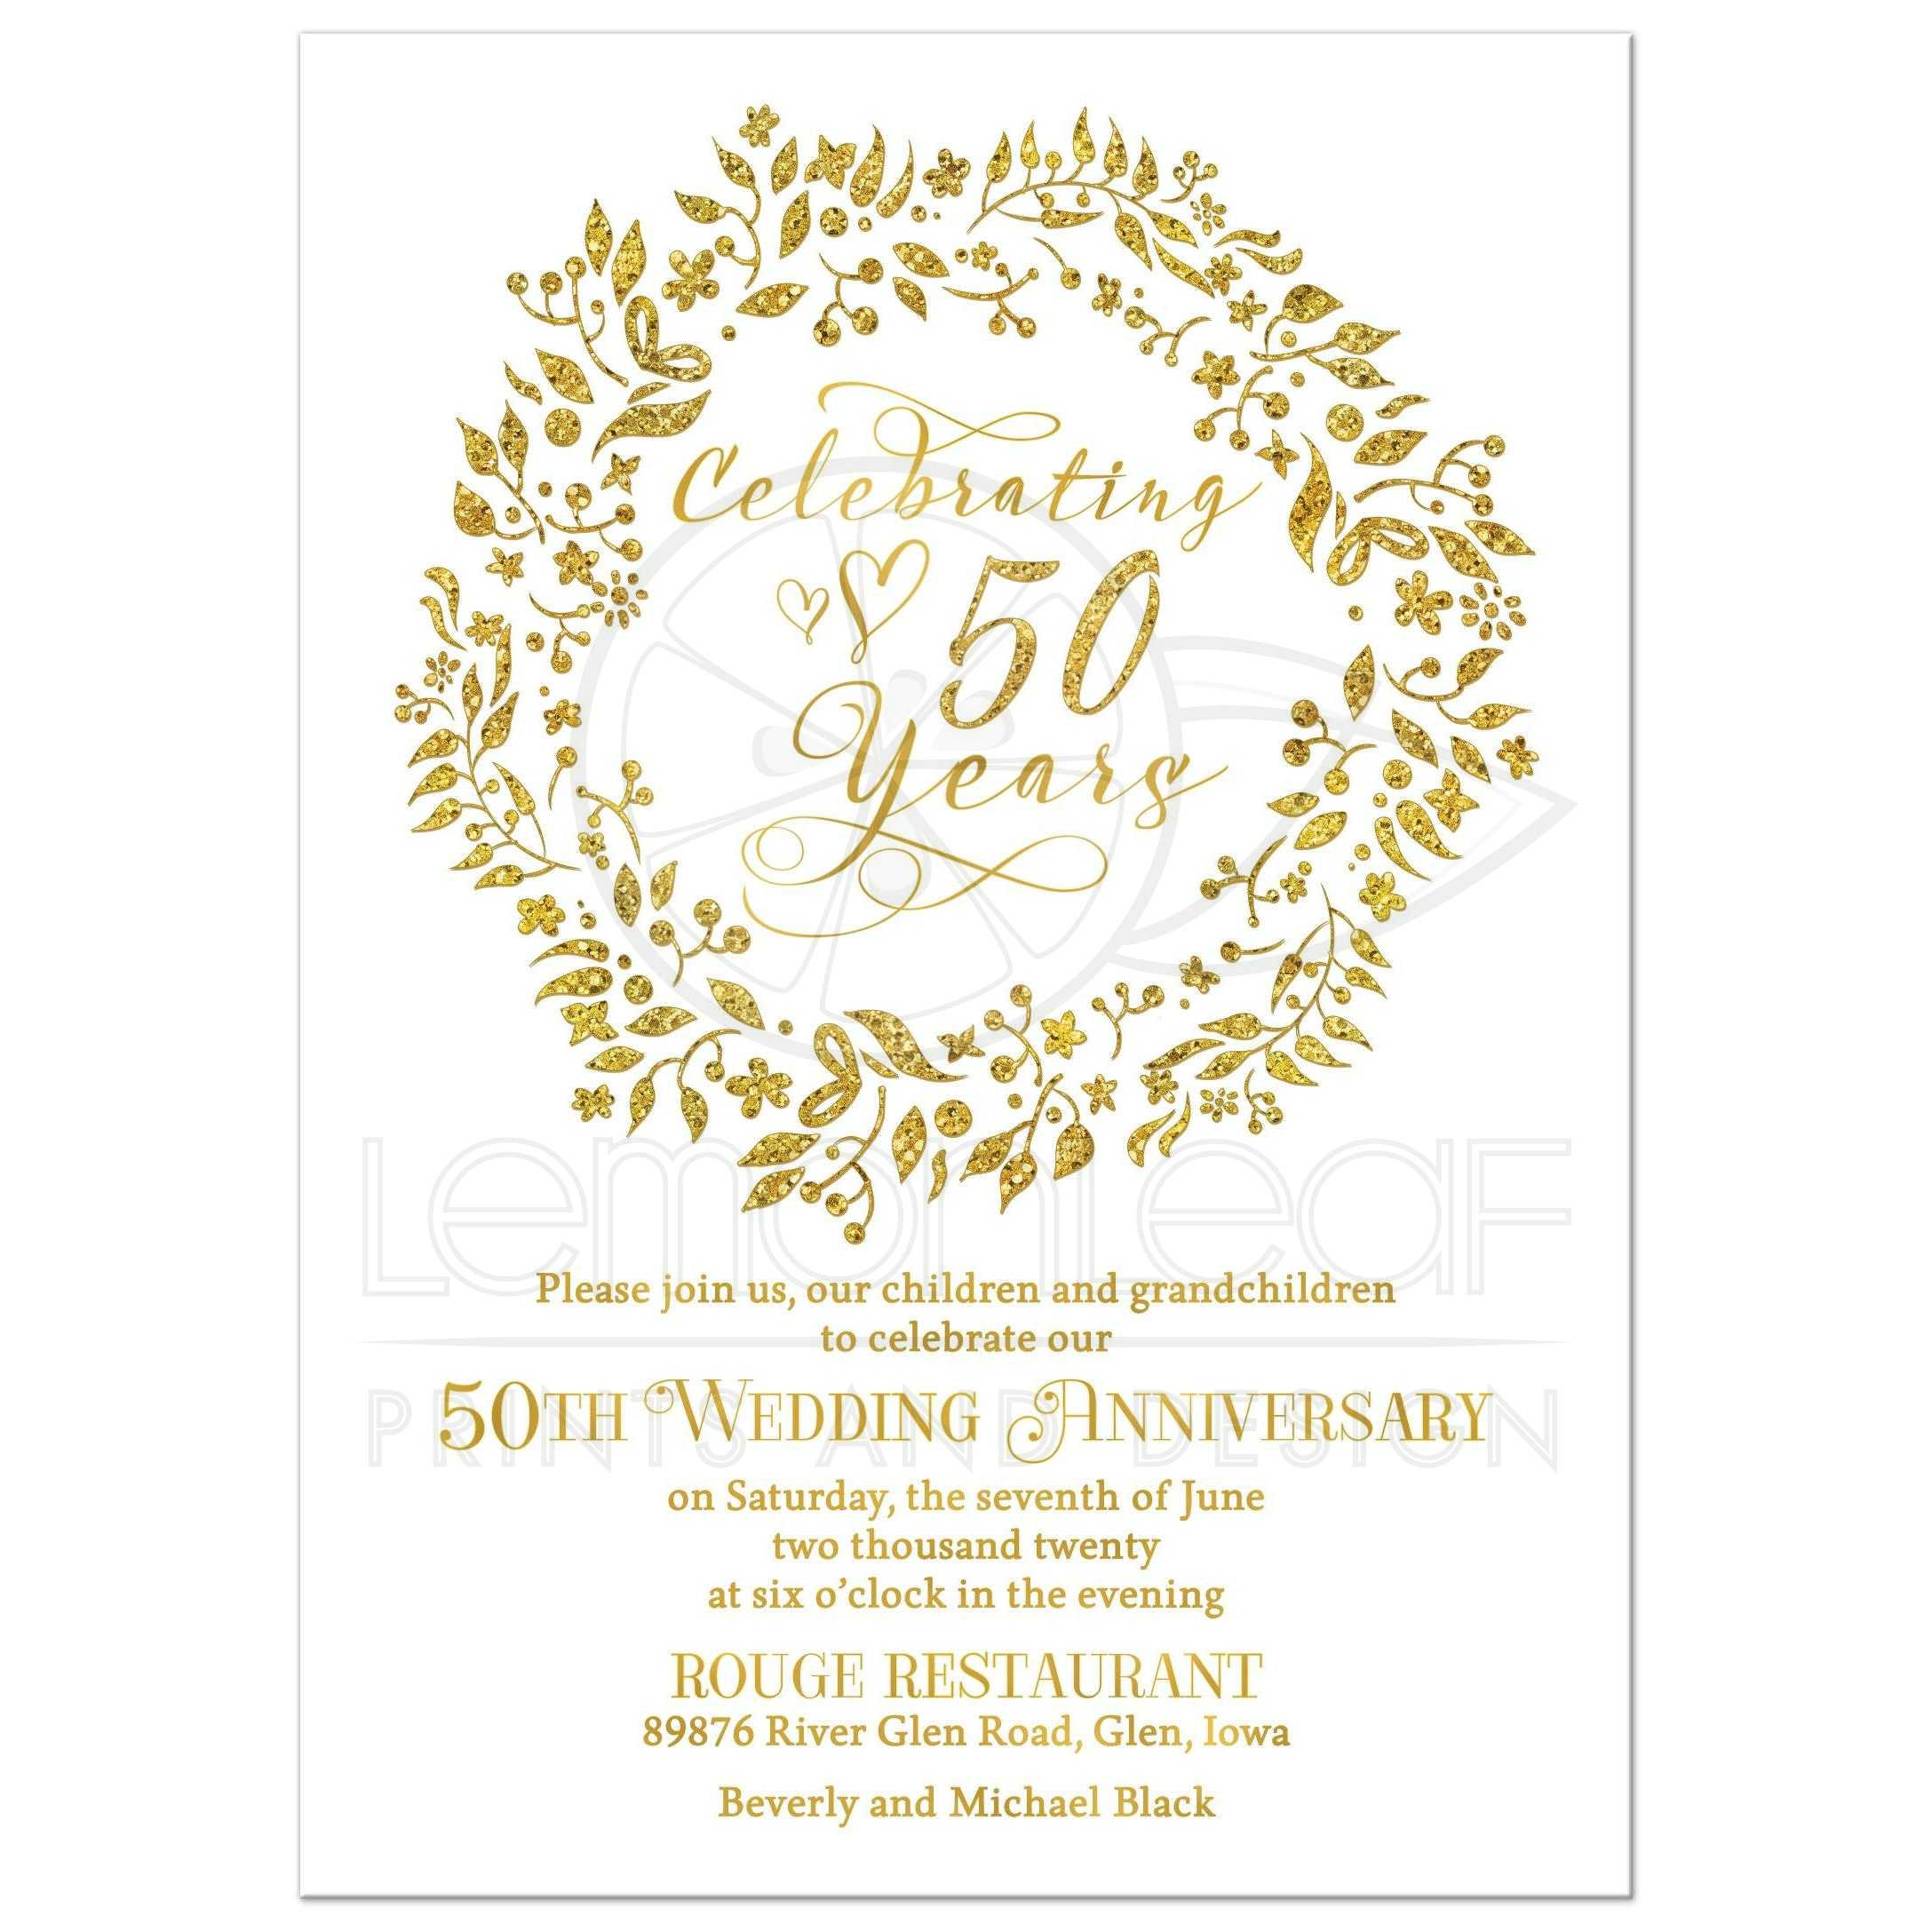 60 x golden wedding anniversary invitation cards 50th party invites 50 years